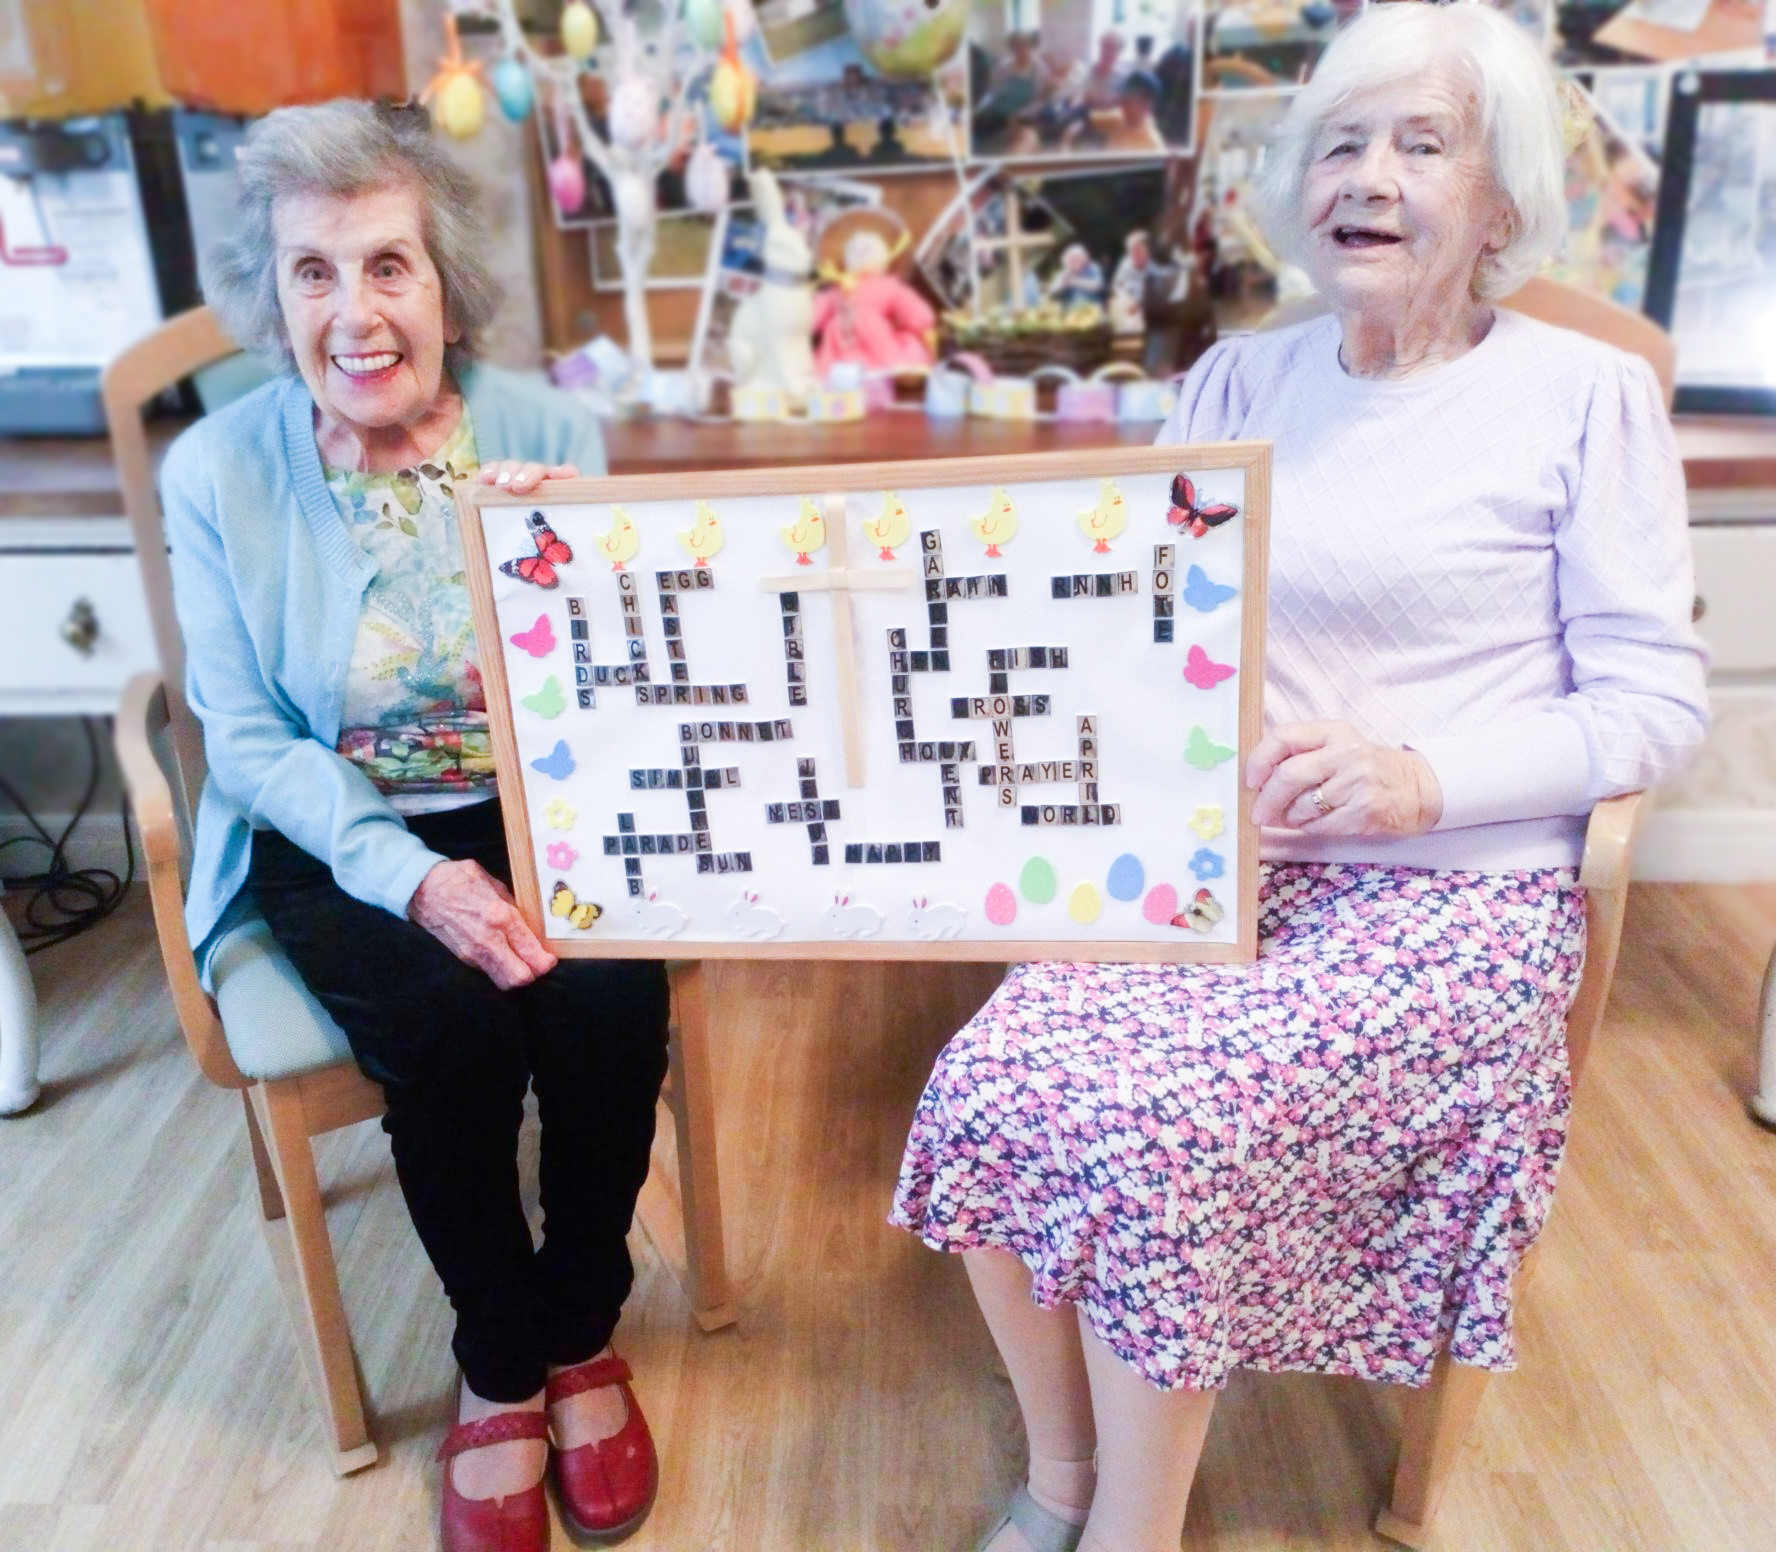 Two RNNH care home residents holding the Easter board